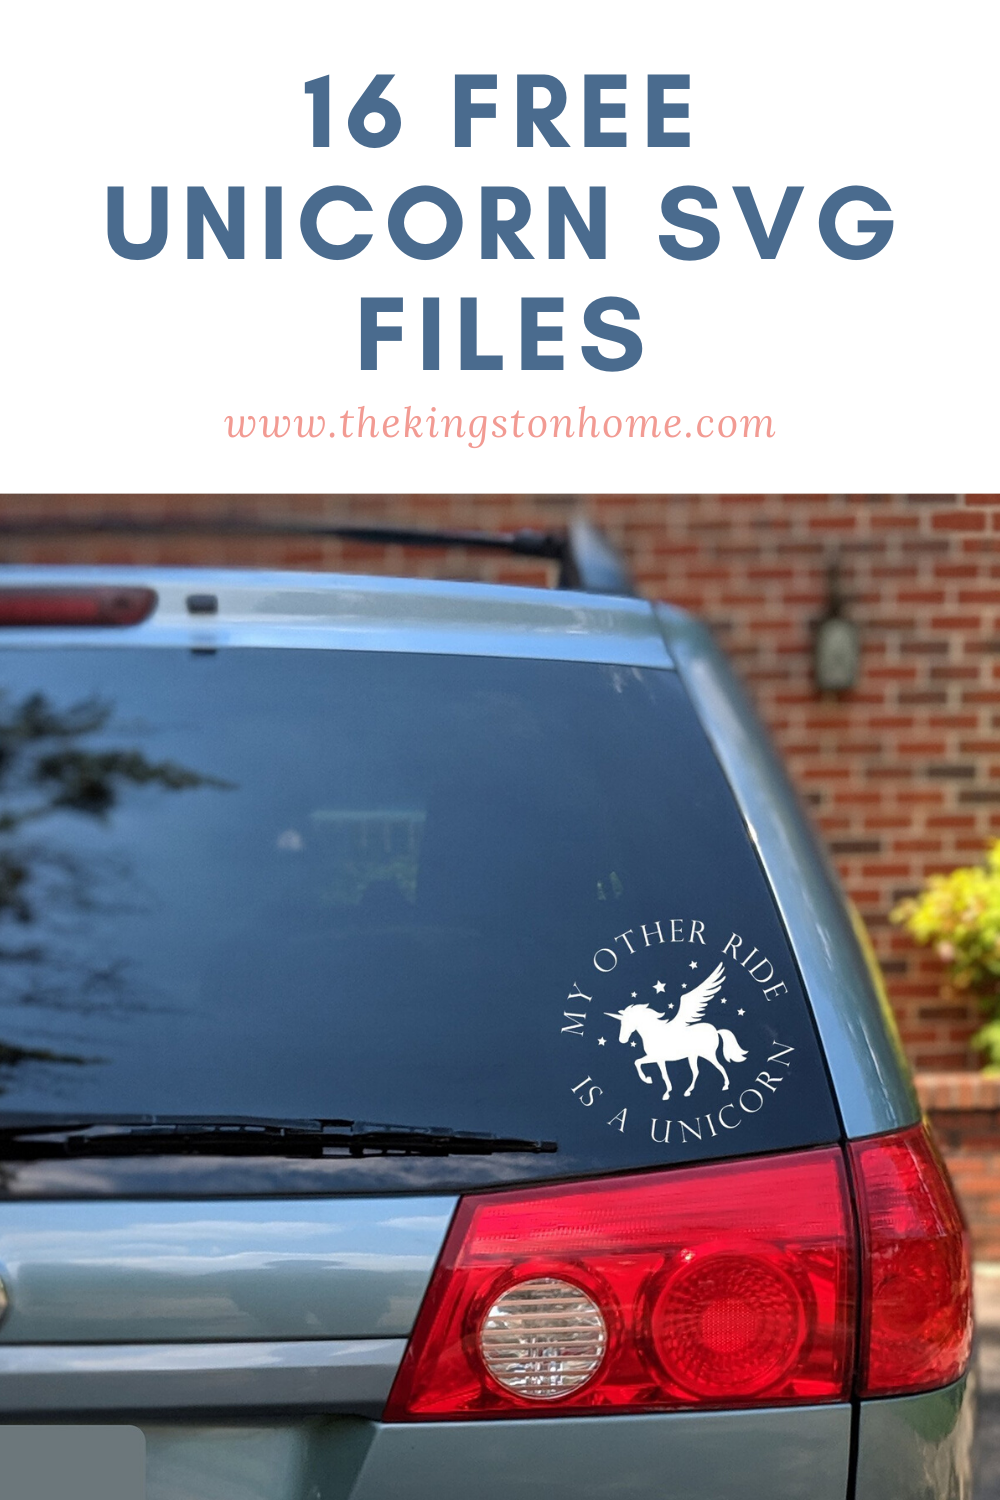 16 Free Unicorn SVG Files - The Kingston Home: Looking for a little magic in your life? How about 16 FREE unicorn SVG files! Perfect for birthday parties, summer tees, or just for fun - who can resist rainbows and sparkles and mythical creatures? via @craftykingstons